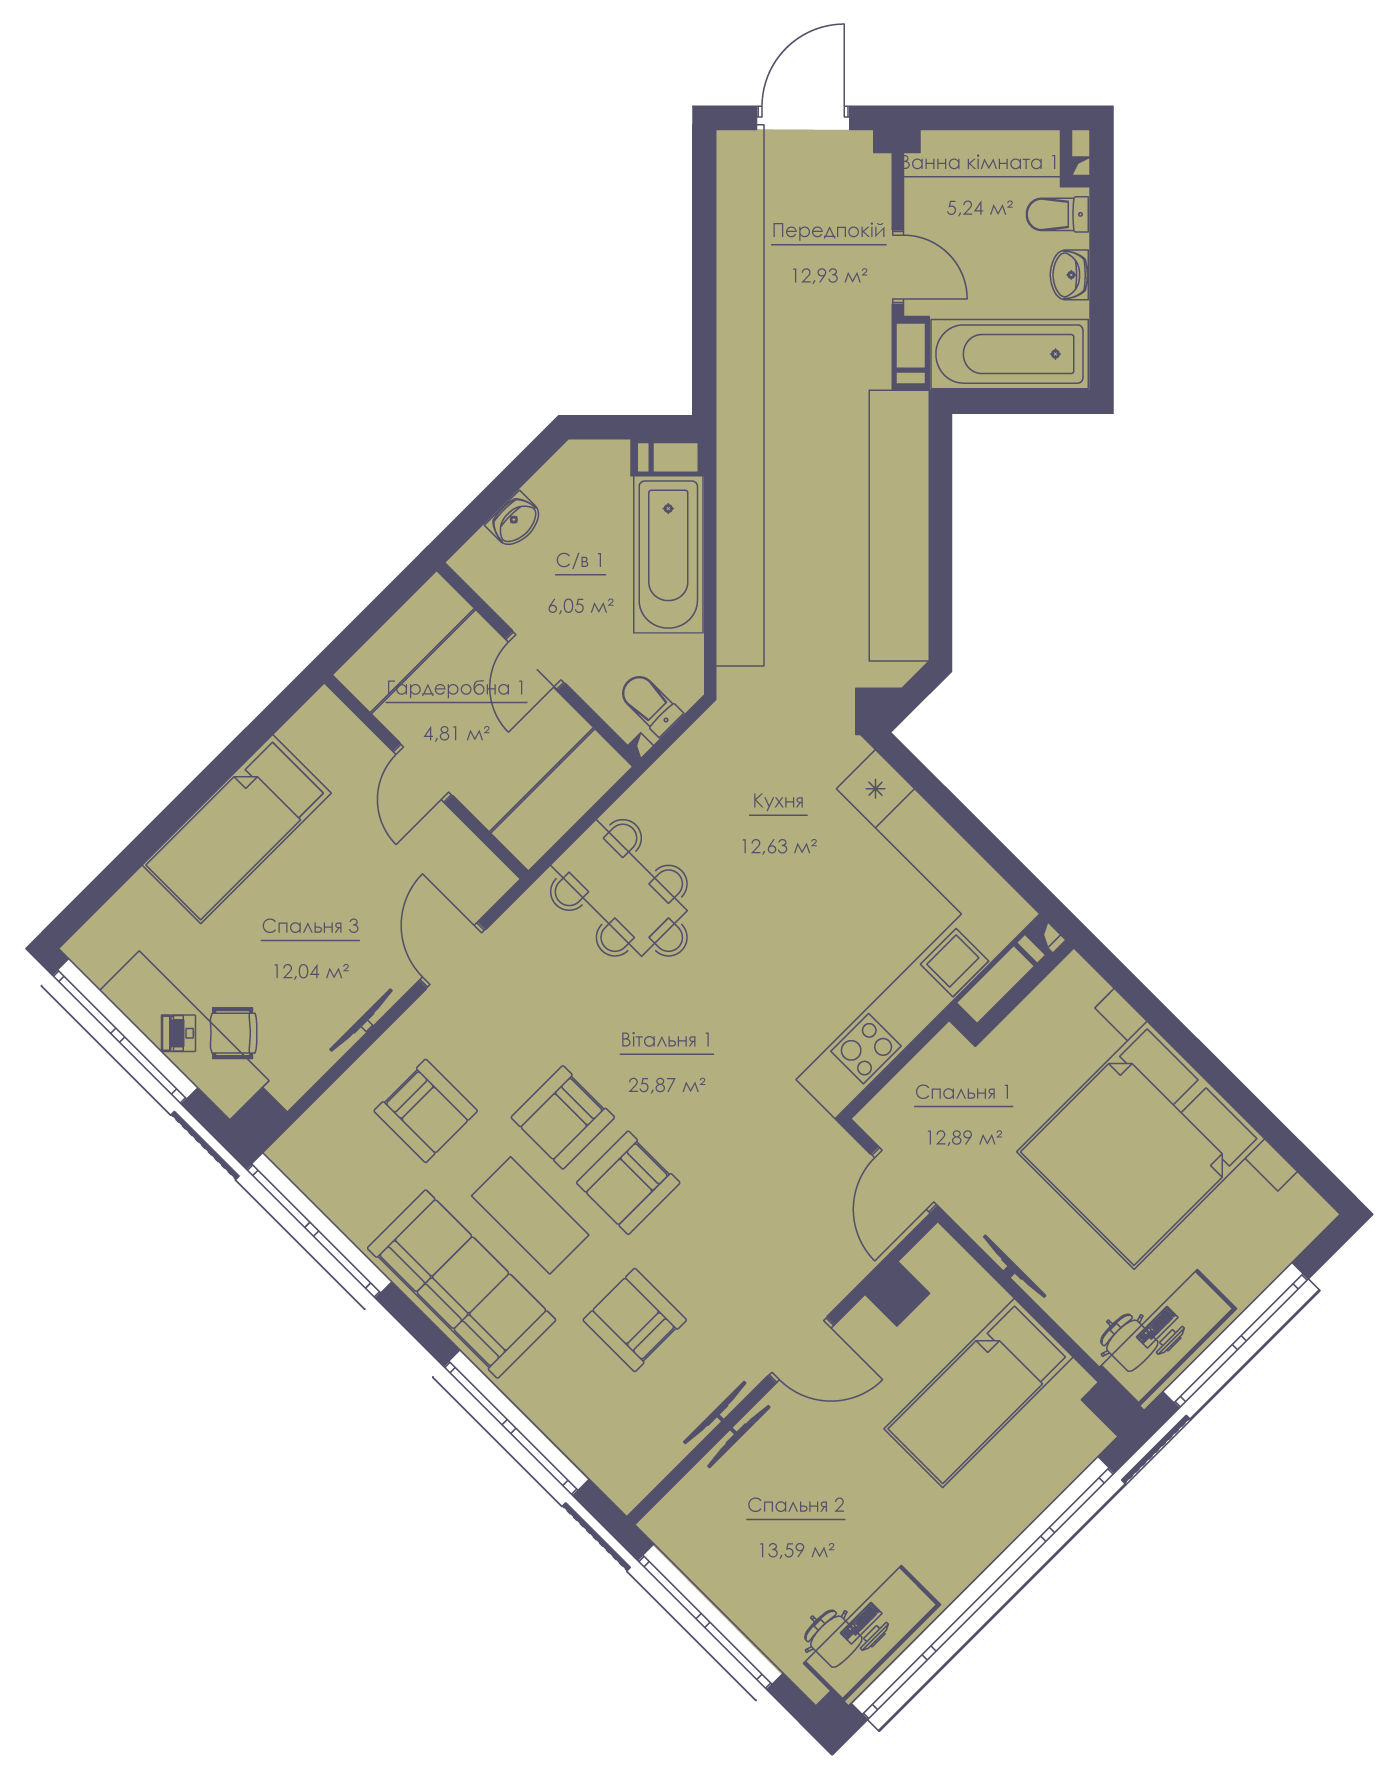 Apartment layout KV_59_4a_1_1_2-1